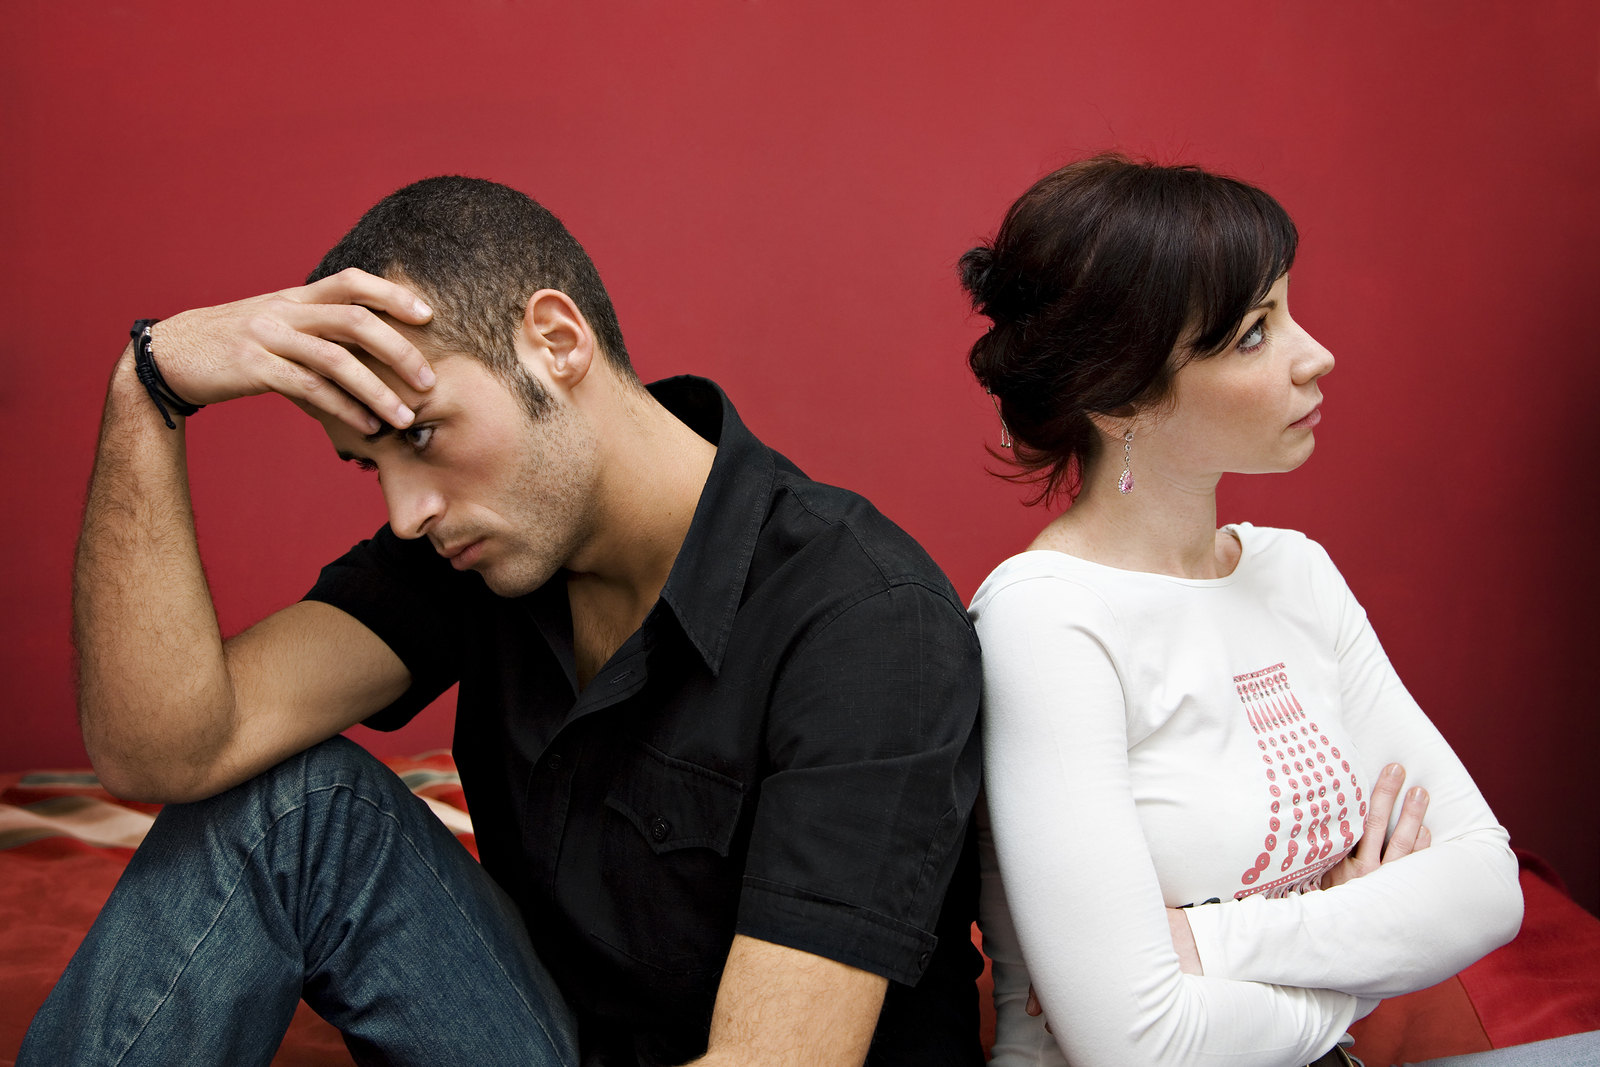 how should you feel after 2 months of dating